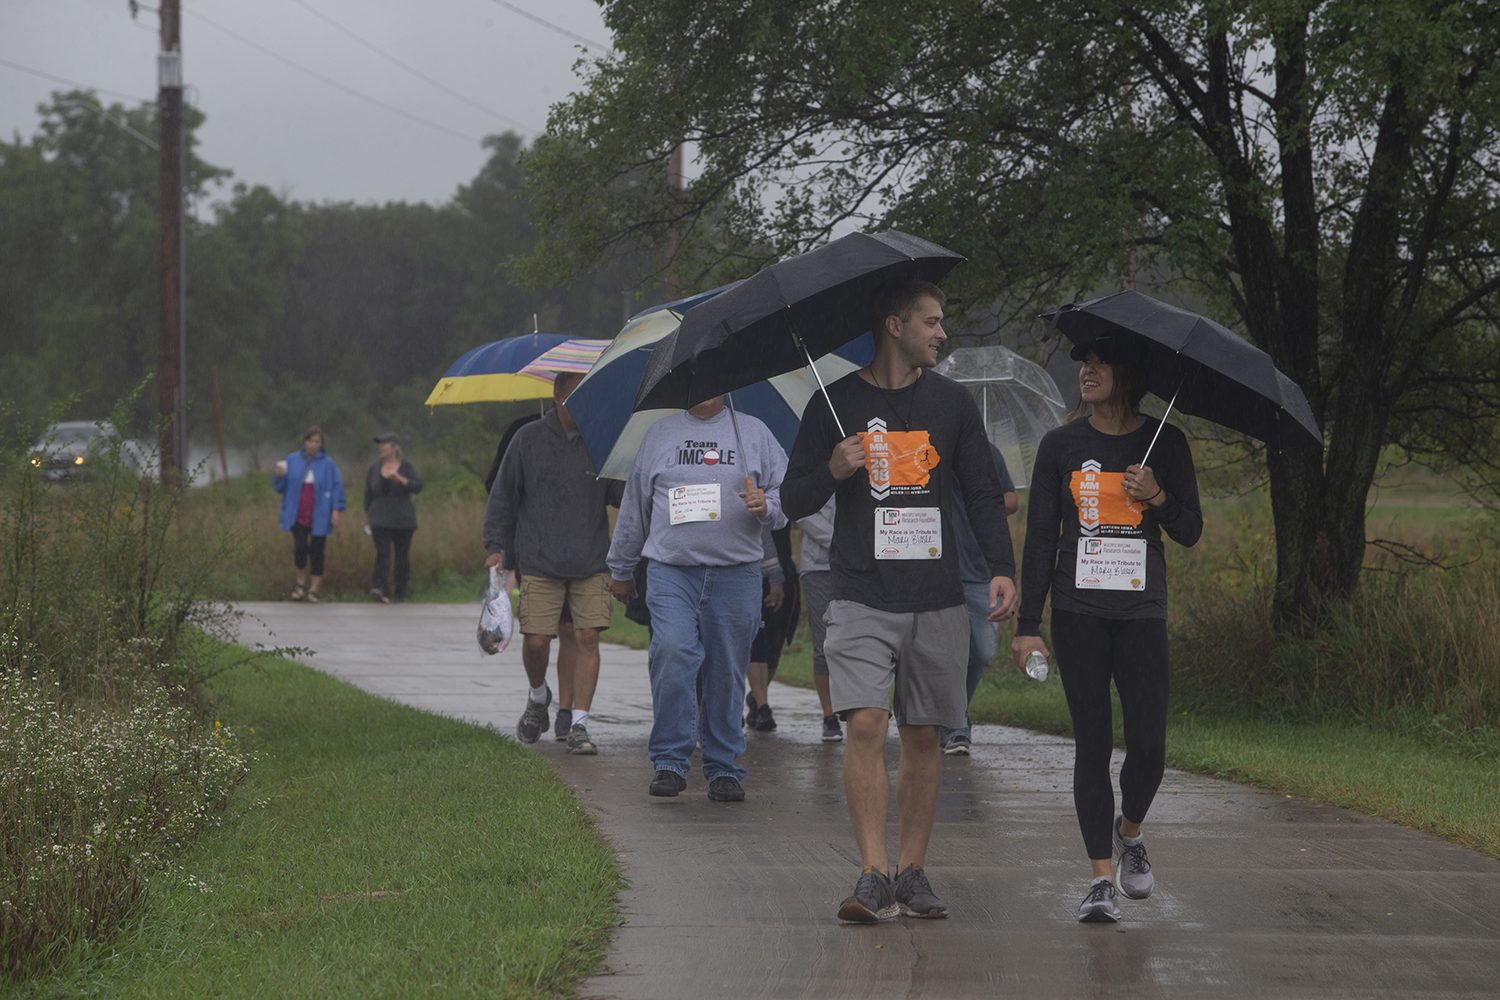 Participants fend off the rain during the 2019 Iowa Miles for Myeloma Run/Walk at Terry Trueblood Recreation Area on Sunday, September 22, 2019.